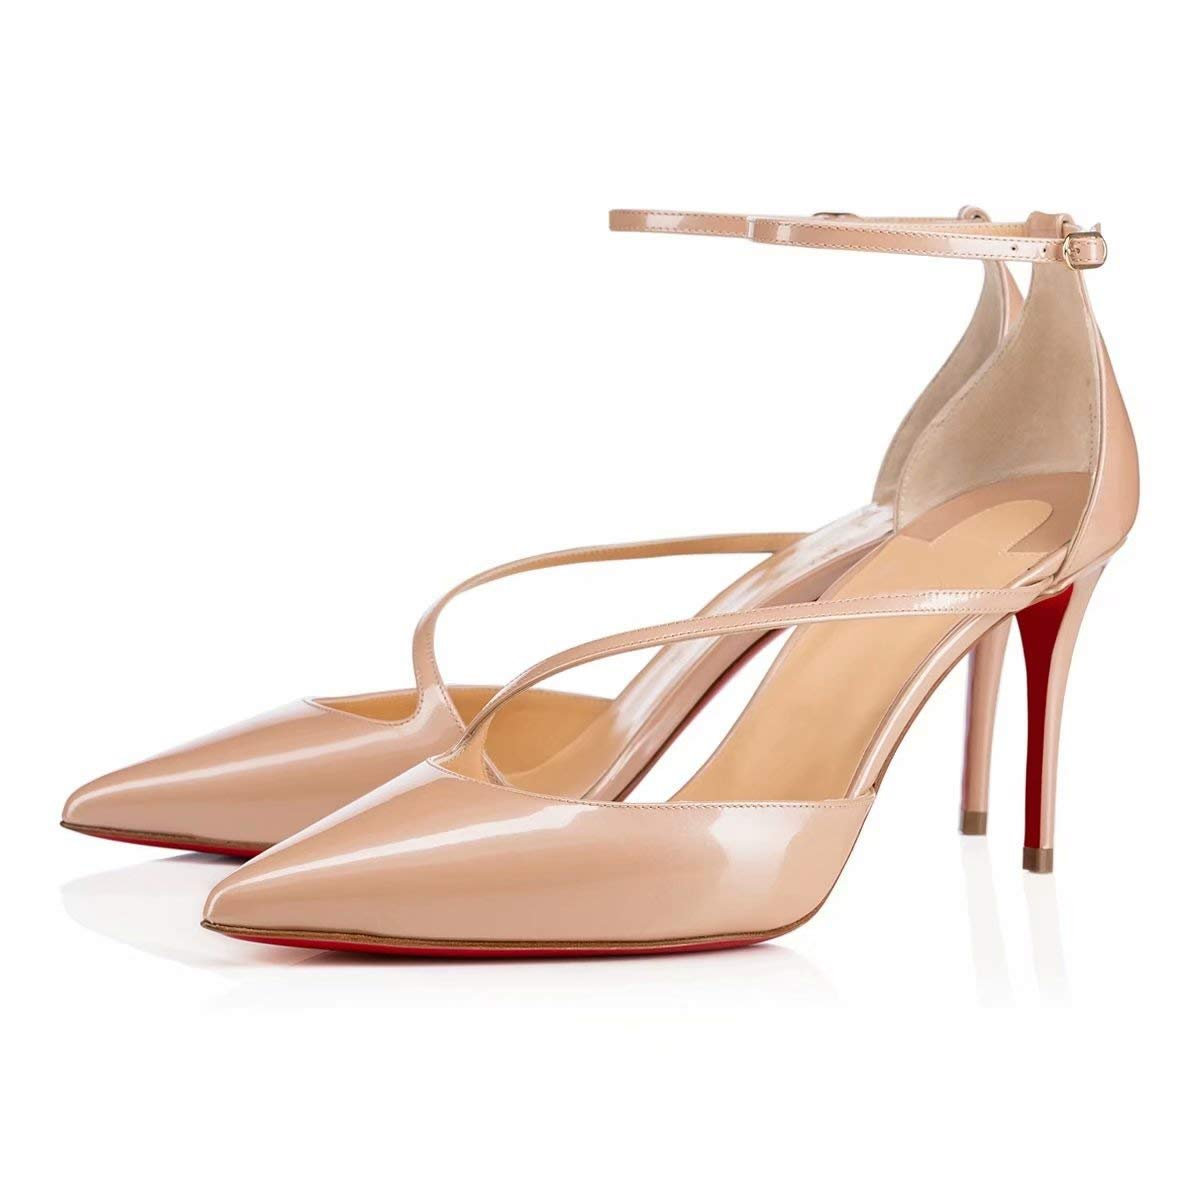 Chris-T Femmes Mode Peep Toe Sangle avec EU des Talons Stiletto Hauts Stiletto Robe De Pompes Taille 35-45 EU Sangle Nude-8.5cm-red S0le f4e880c - piero.space